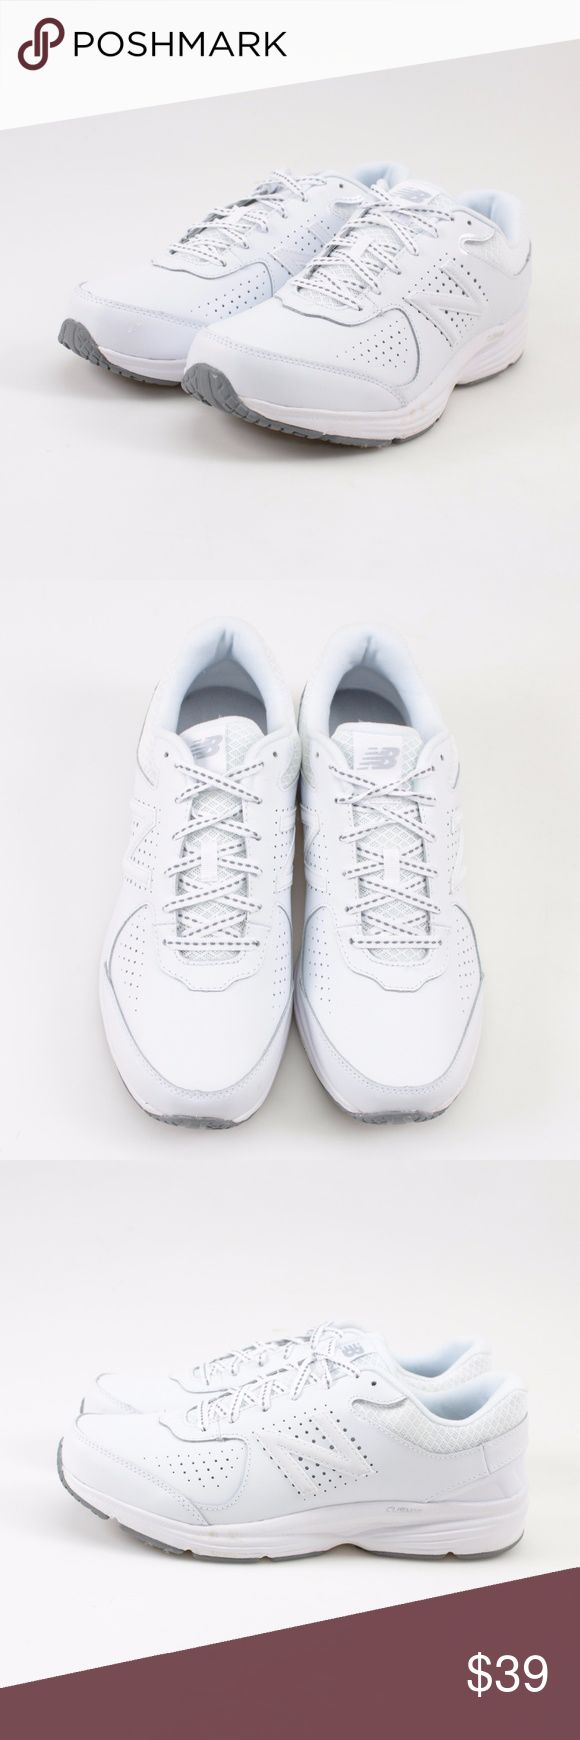 New Balance 411 Cush White Leather Sneakers // 10 🌼 Put your best foot forward in these comfortable women's walking shoes by New Balance. 🌼 ABZORB cushioning in heel for great shock absorption 🌼 Polyurethane midsole for stable cushioning 🌼 Leather upper 🌼 Padded footbed  🌼 These shoes come brand new condition in the original box! 🌼 There are a few small marks on the sole from being tried on. 🌼 Photos show all details, so please look over thoroughly. 🌼 #27WKSD // New Balance…